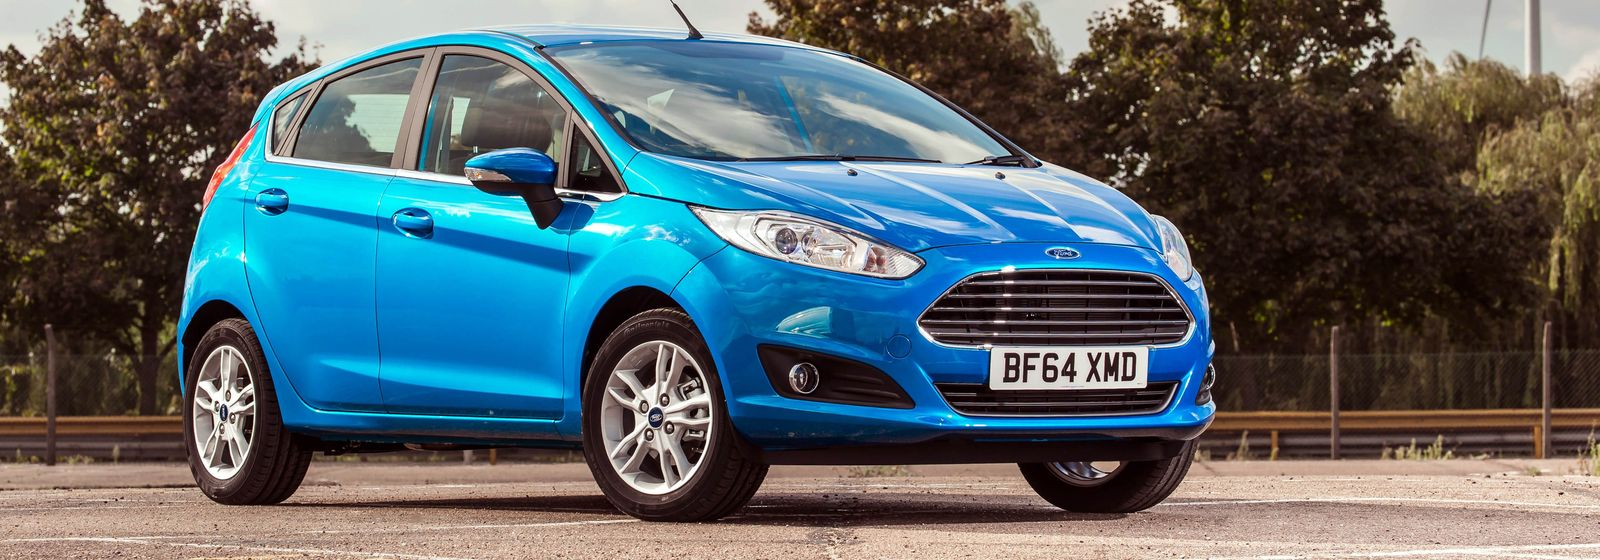 Colour car metallic - Ford Fiesta In Candy Blue A Special Paint With A Tinted Clearcoat